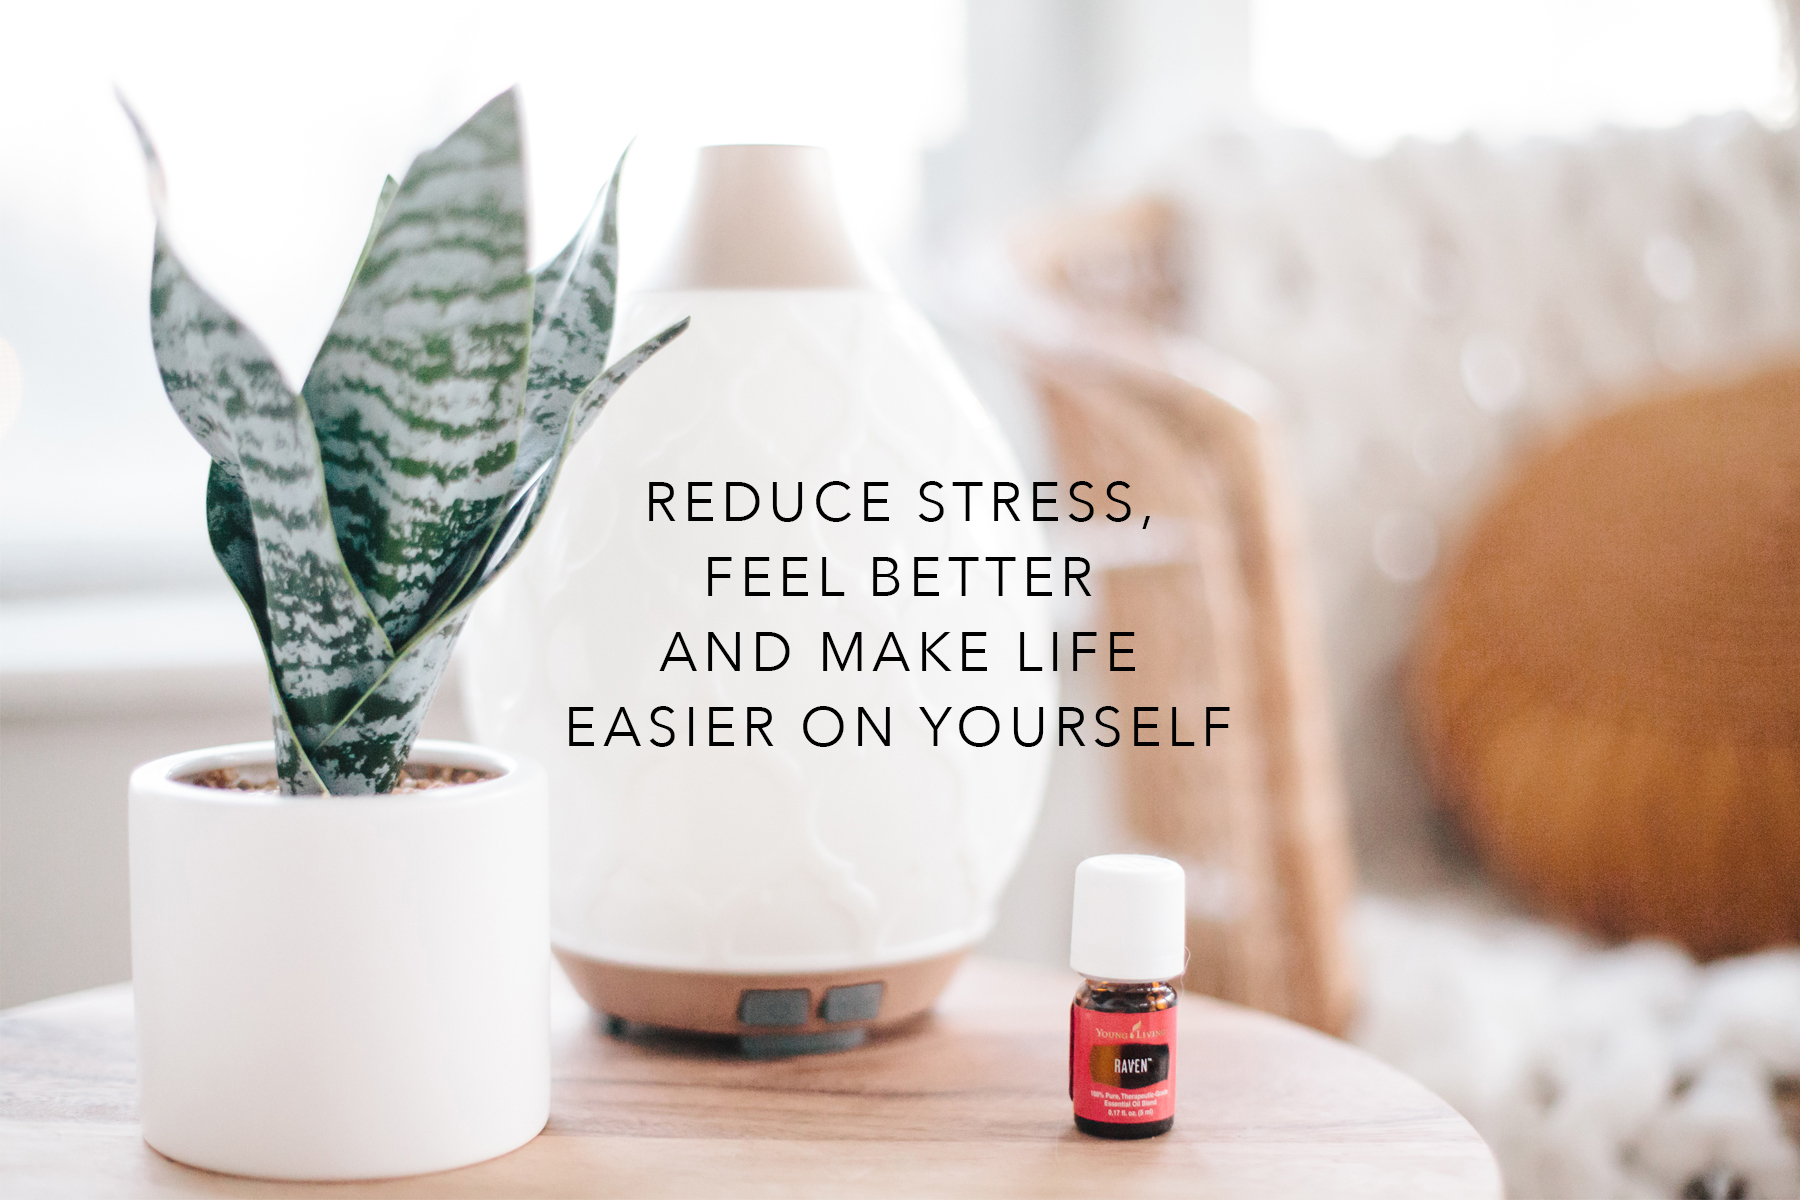 Reduce Stress, Feel Better & Make Life Easier On Yourself